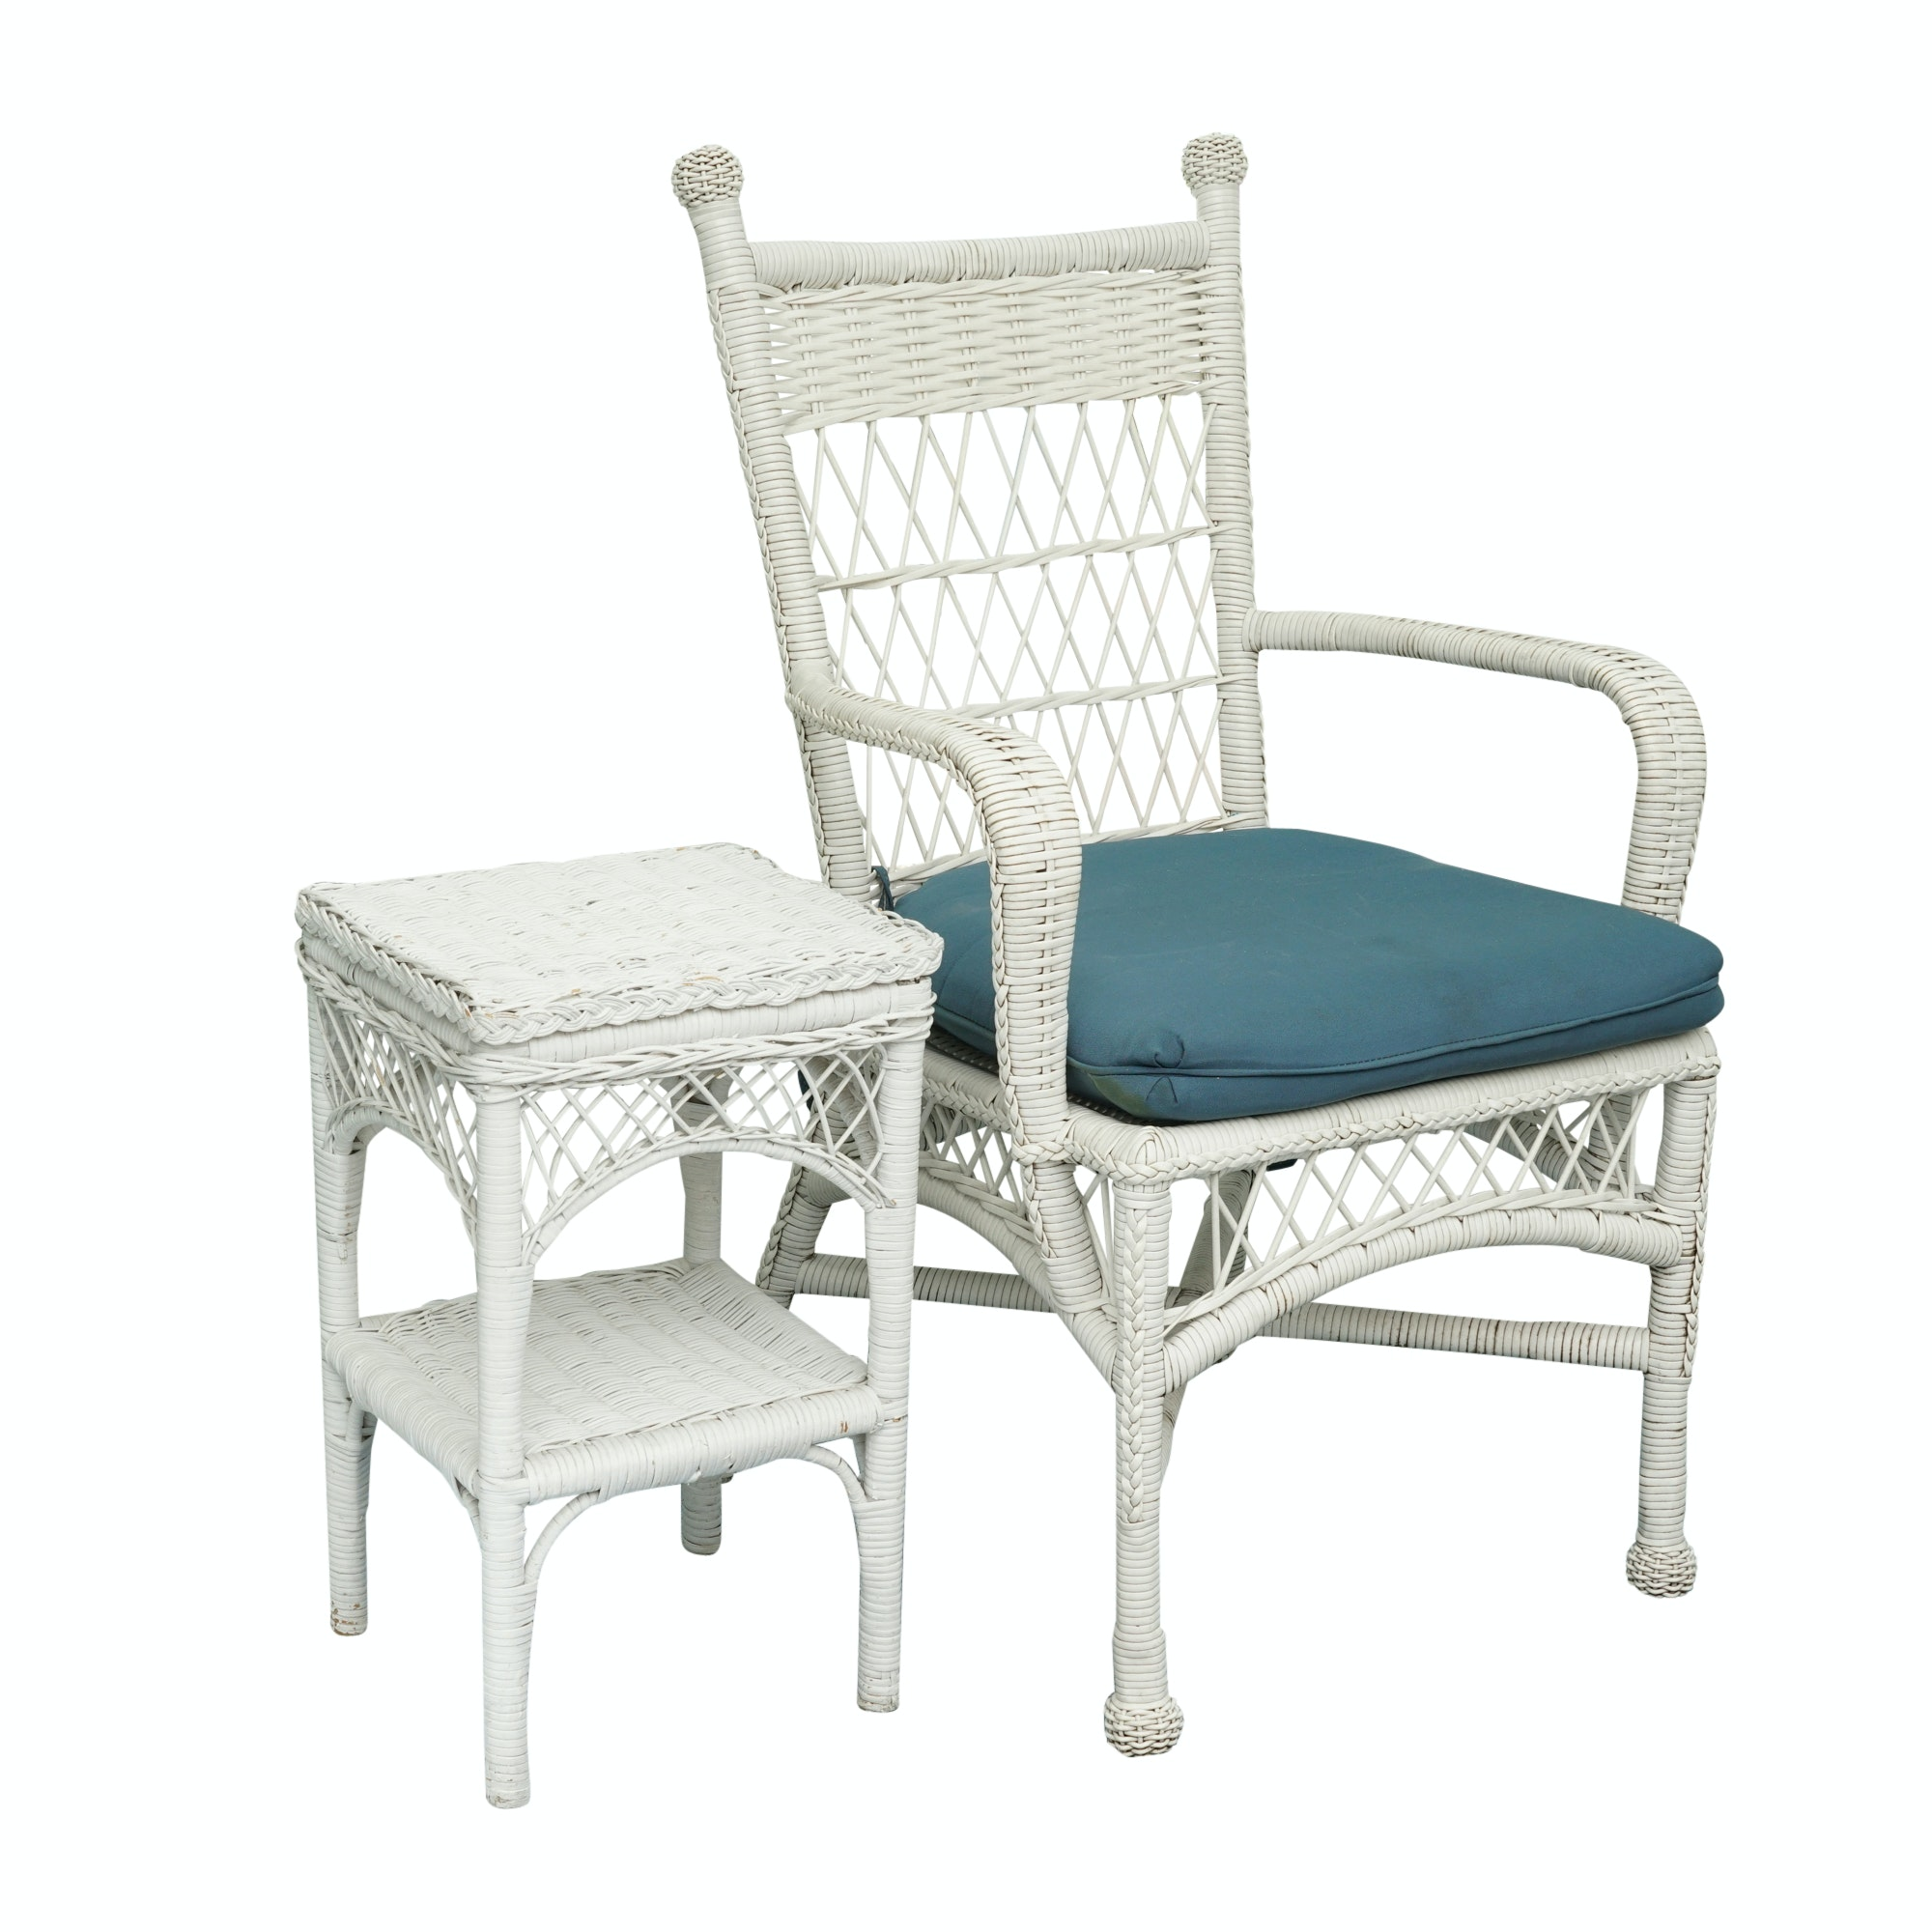 White Wicker Style Armchair with Side Table